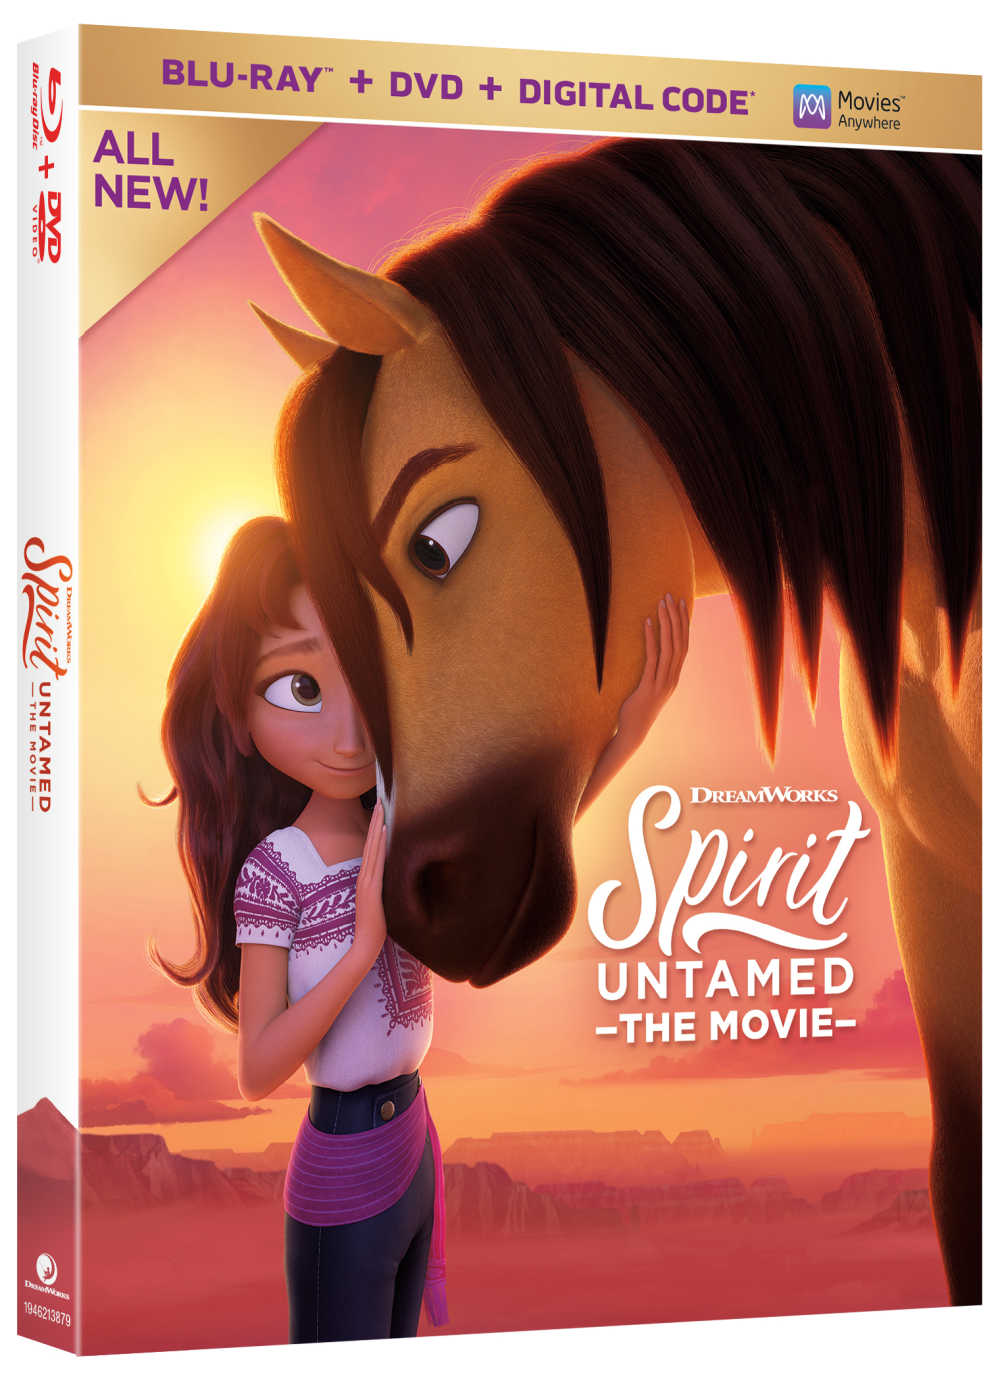 It is time to enjoy the latest adventures of Spirit, Lucky and friends, so pick up the Spirit Untamed Blu-ray, DVD & digital movie.